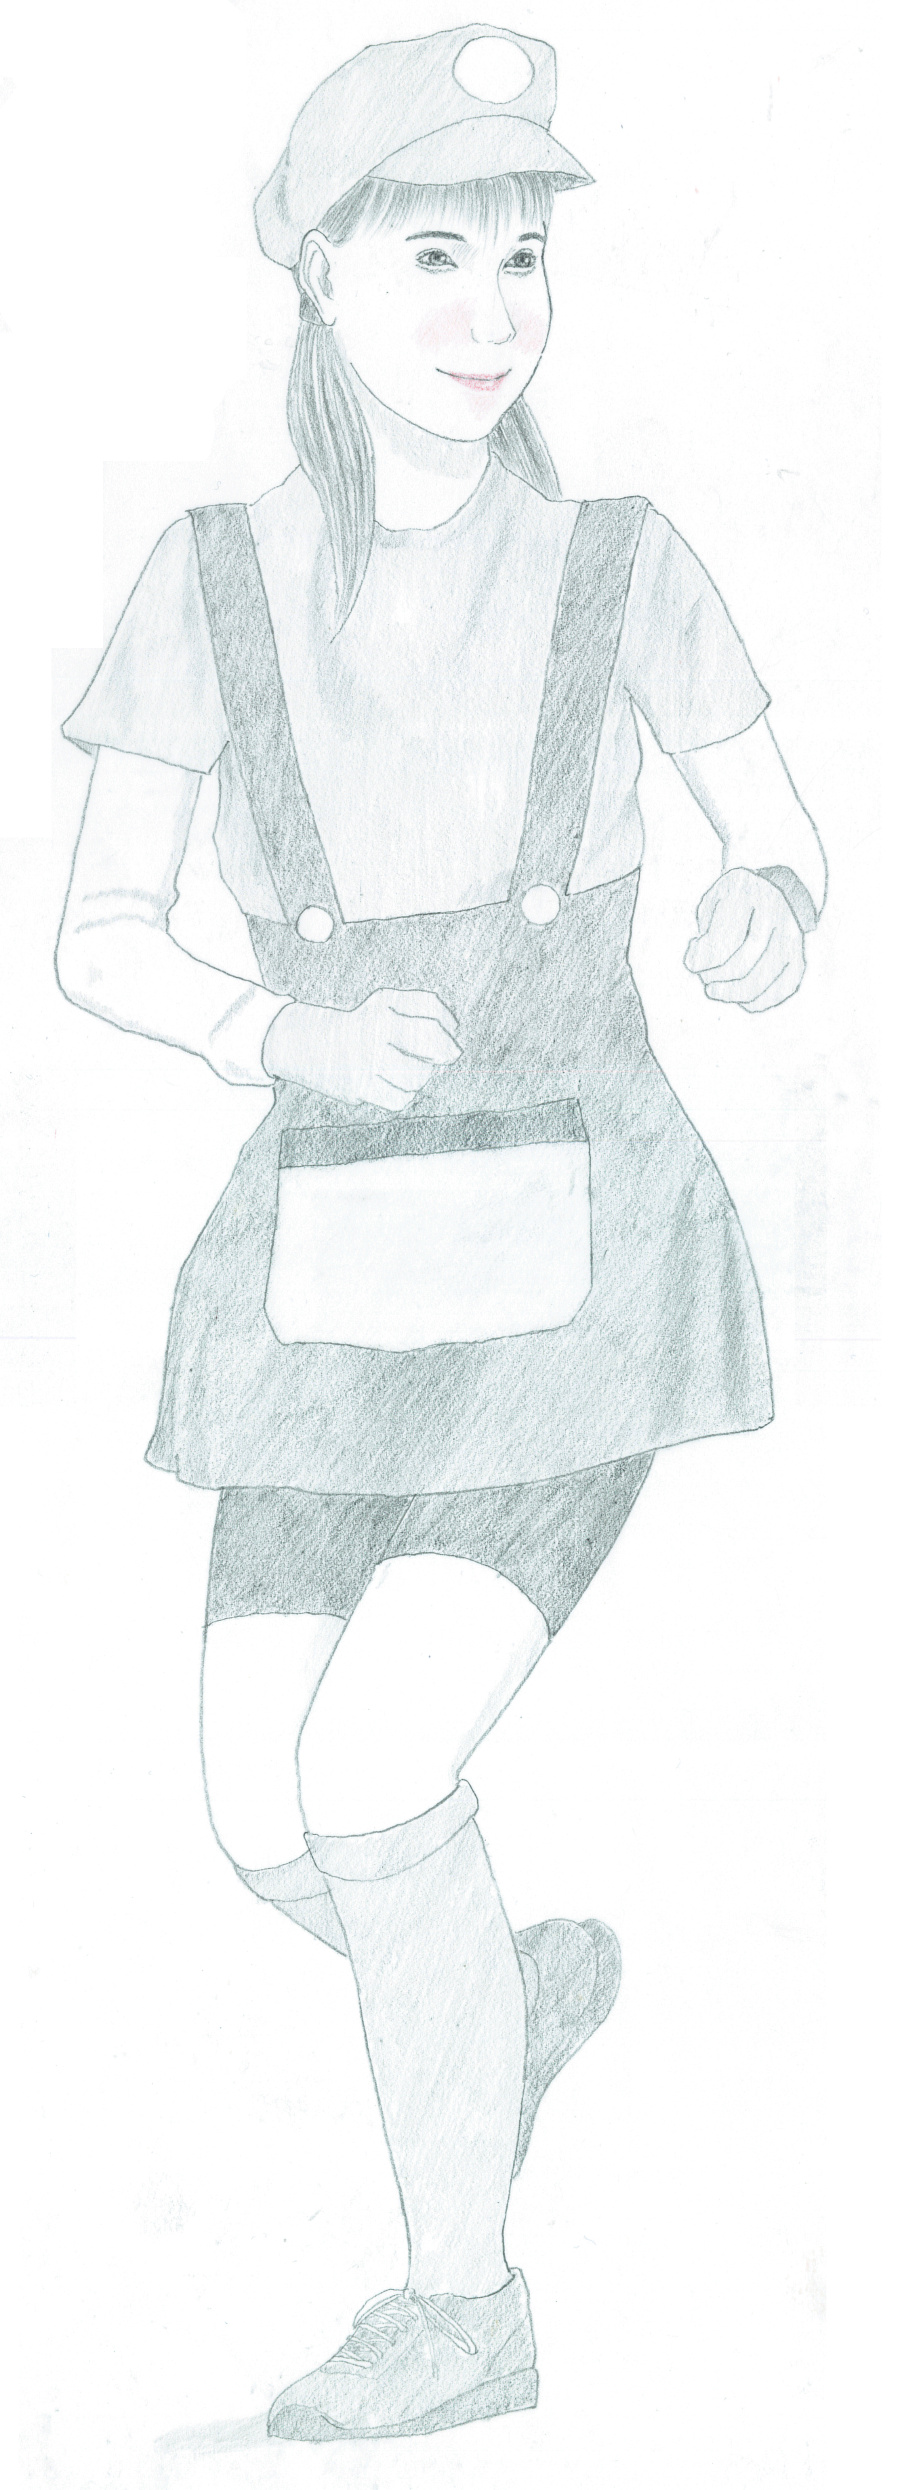 full-length portrait of a woman runner running marathon in a character costume